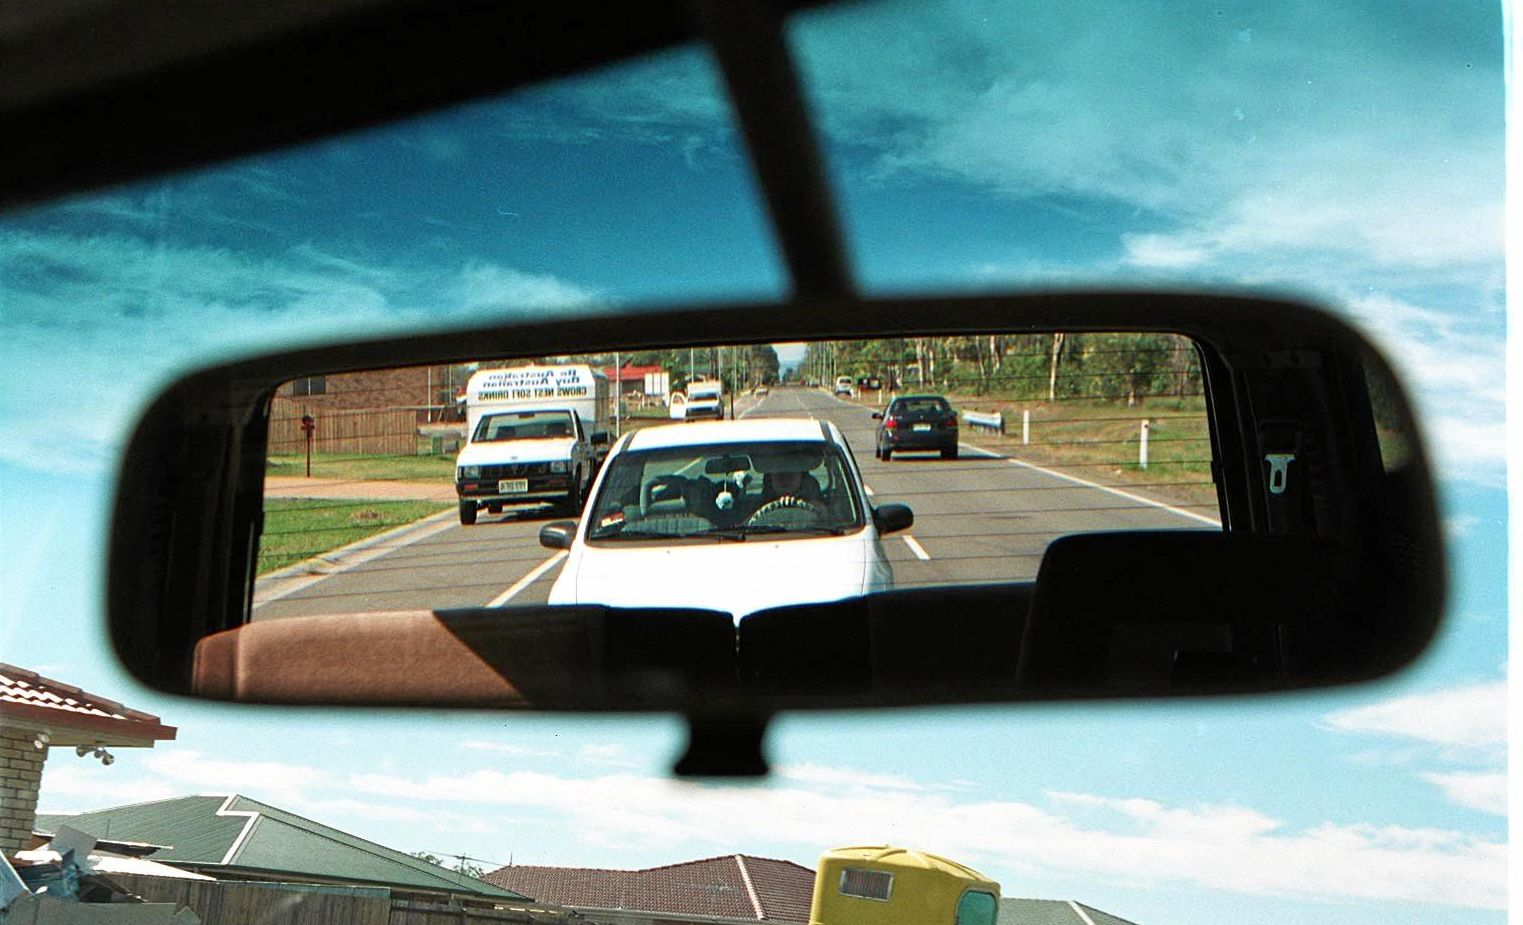 BEHIND YOU: Tailgating is ranked number one on the most annoying driver habits.